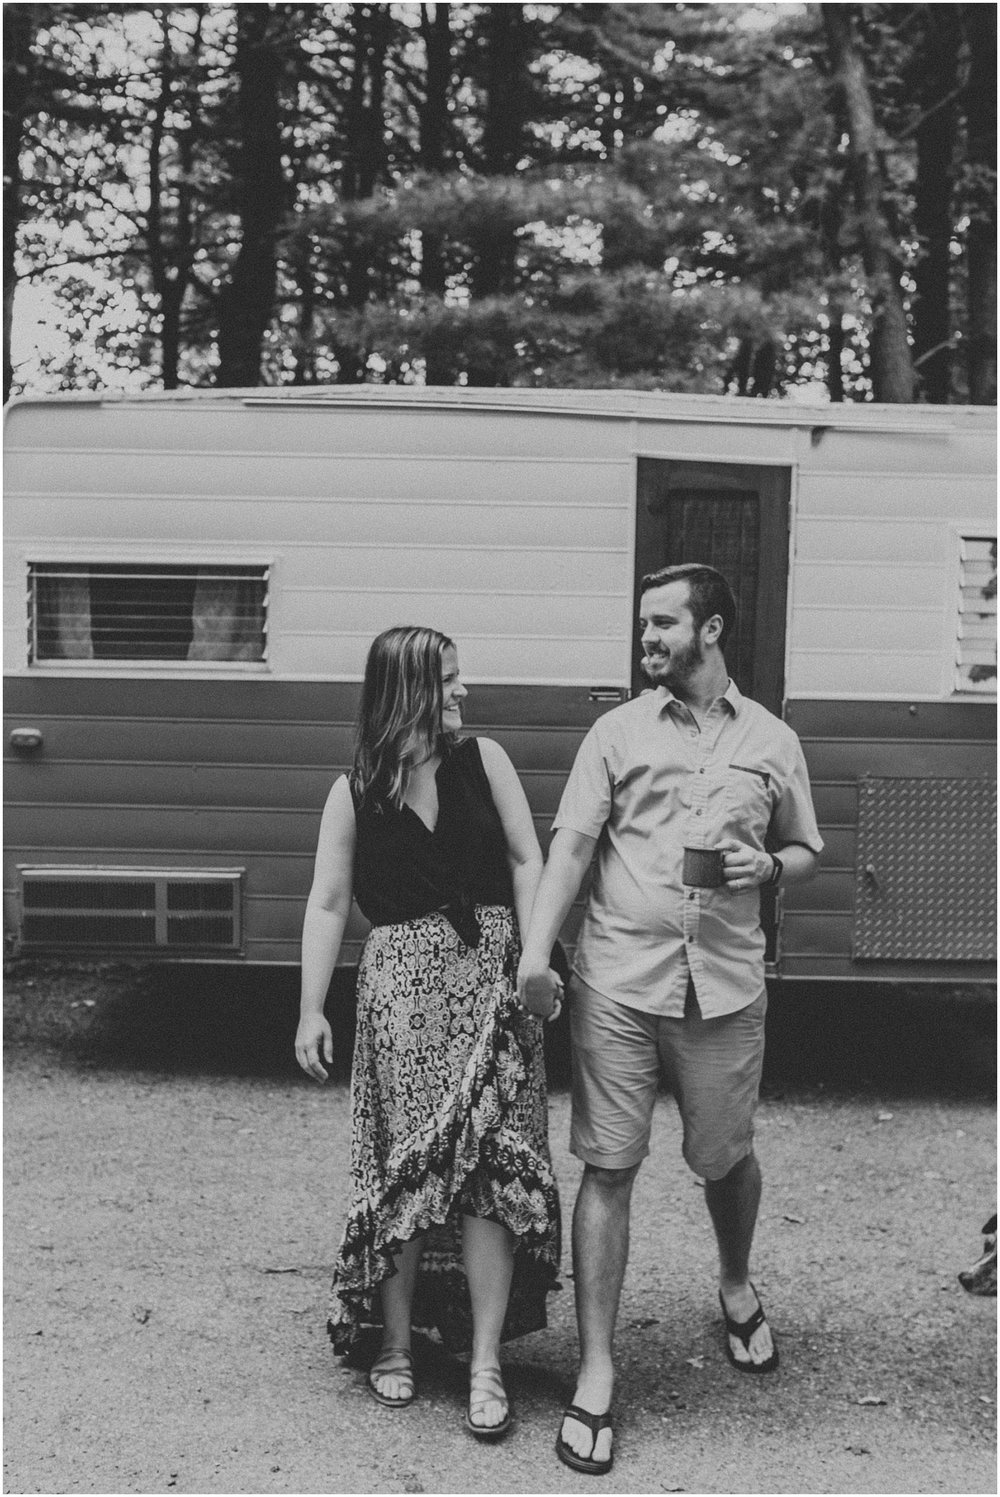 lifestyle-anniversary-engagement-photo session-rv-camping-road trip-vintage trailer-camping-outdoor photos_0226.jpg